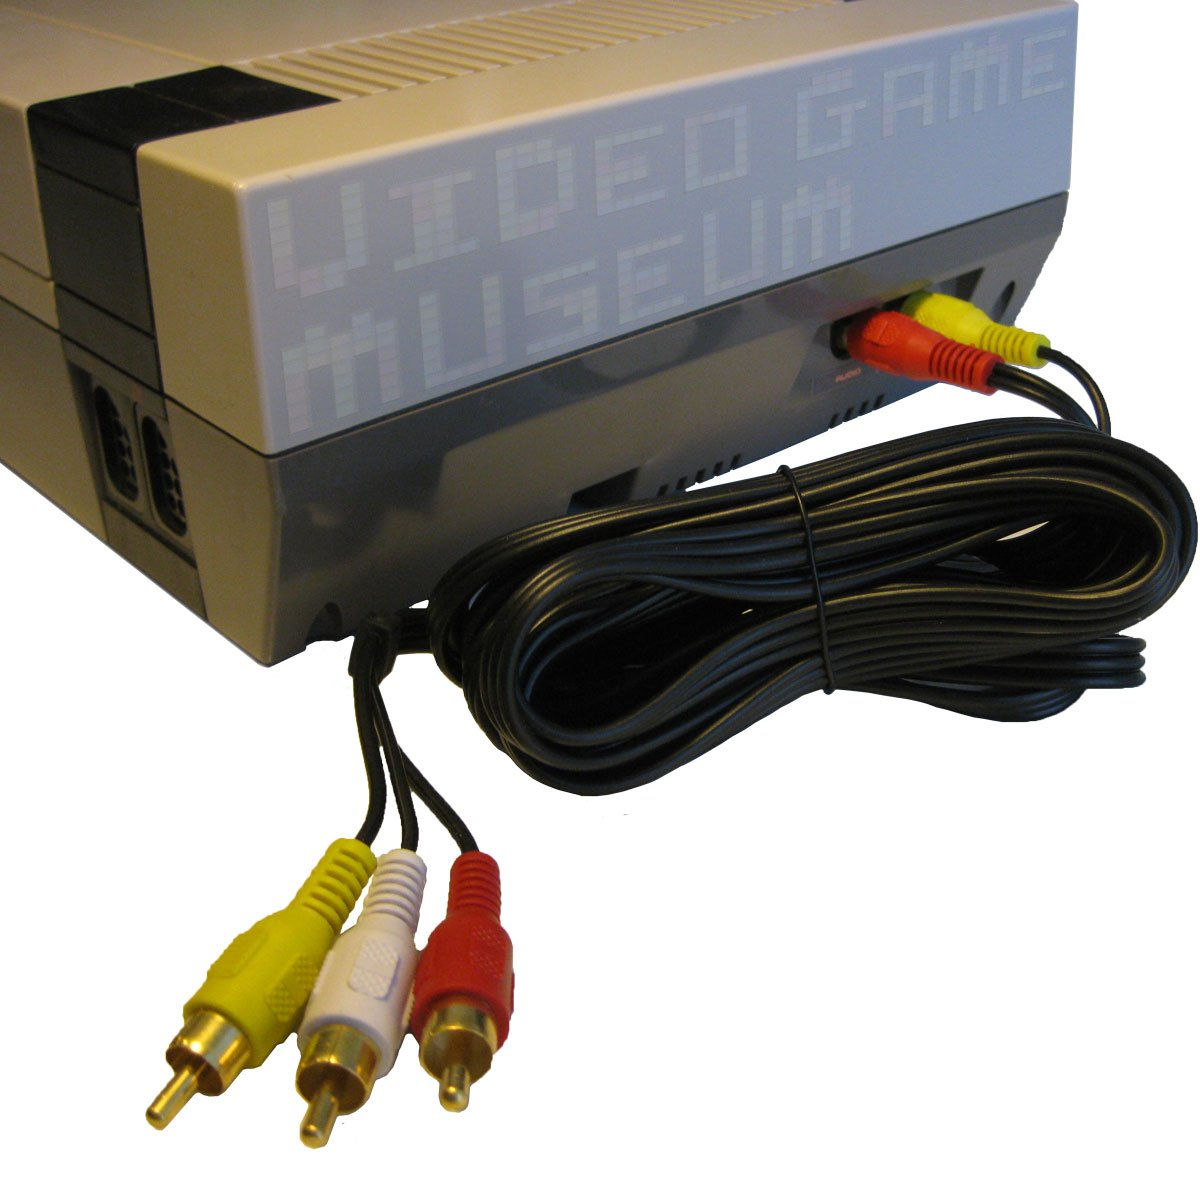 NES AV Cable''Simulated Stereo'' Audio Video TV Cord for Original Nintendo System replaces RF Switch by MIZAR